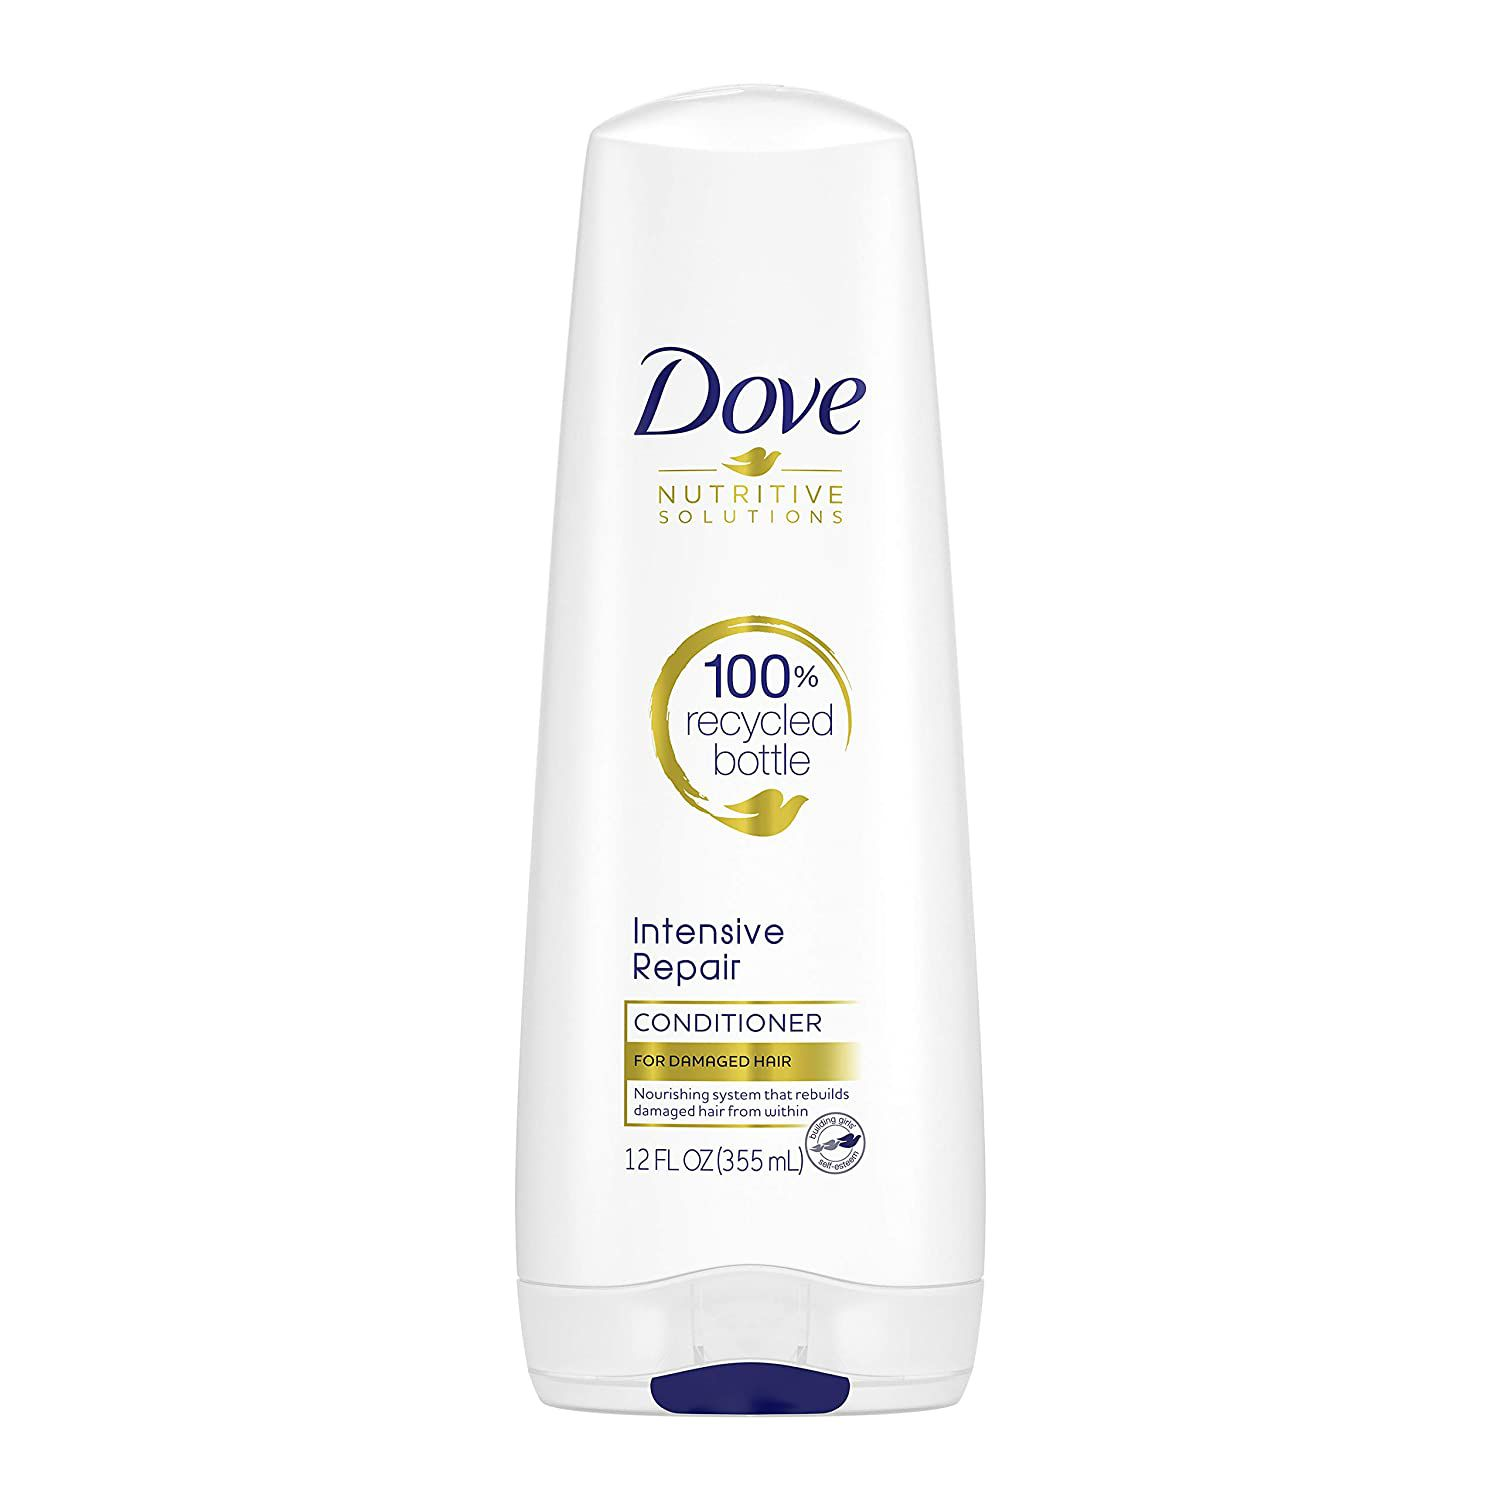 Dove Beauty Nutritive Intensive Repair Solutions Conditioner